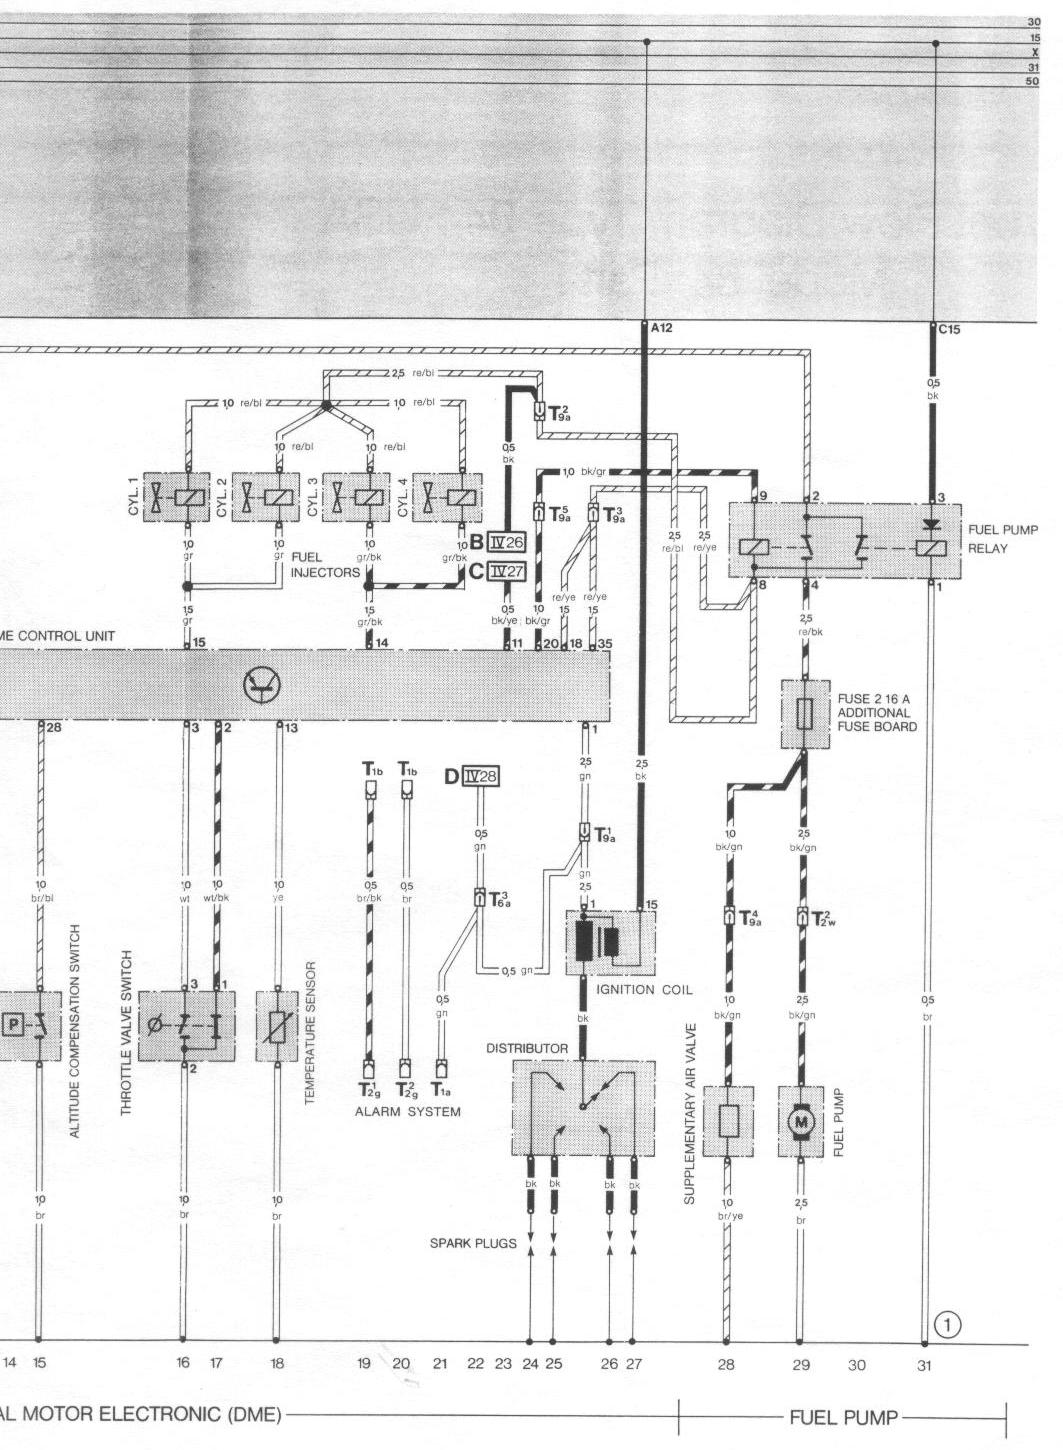 944_84_1_2 pelican parts porsche 924 944 electrical diagrams 1984 porsche 944 wiring diagram at bayanpartner.co